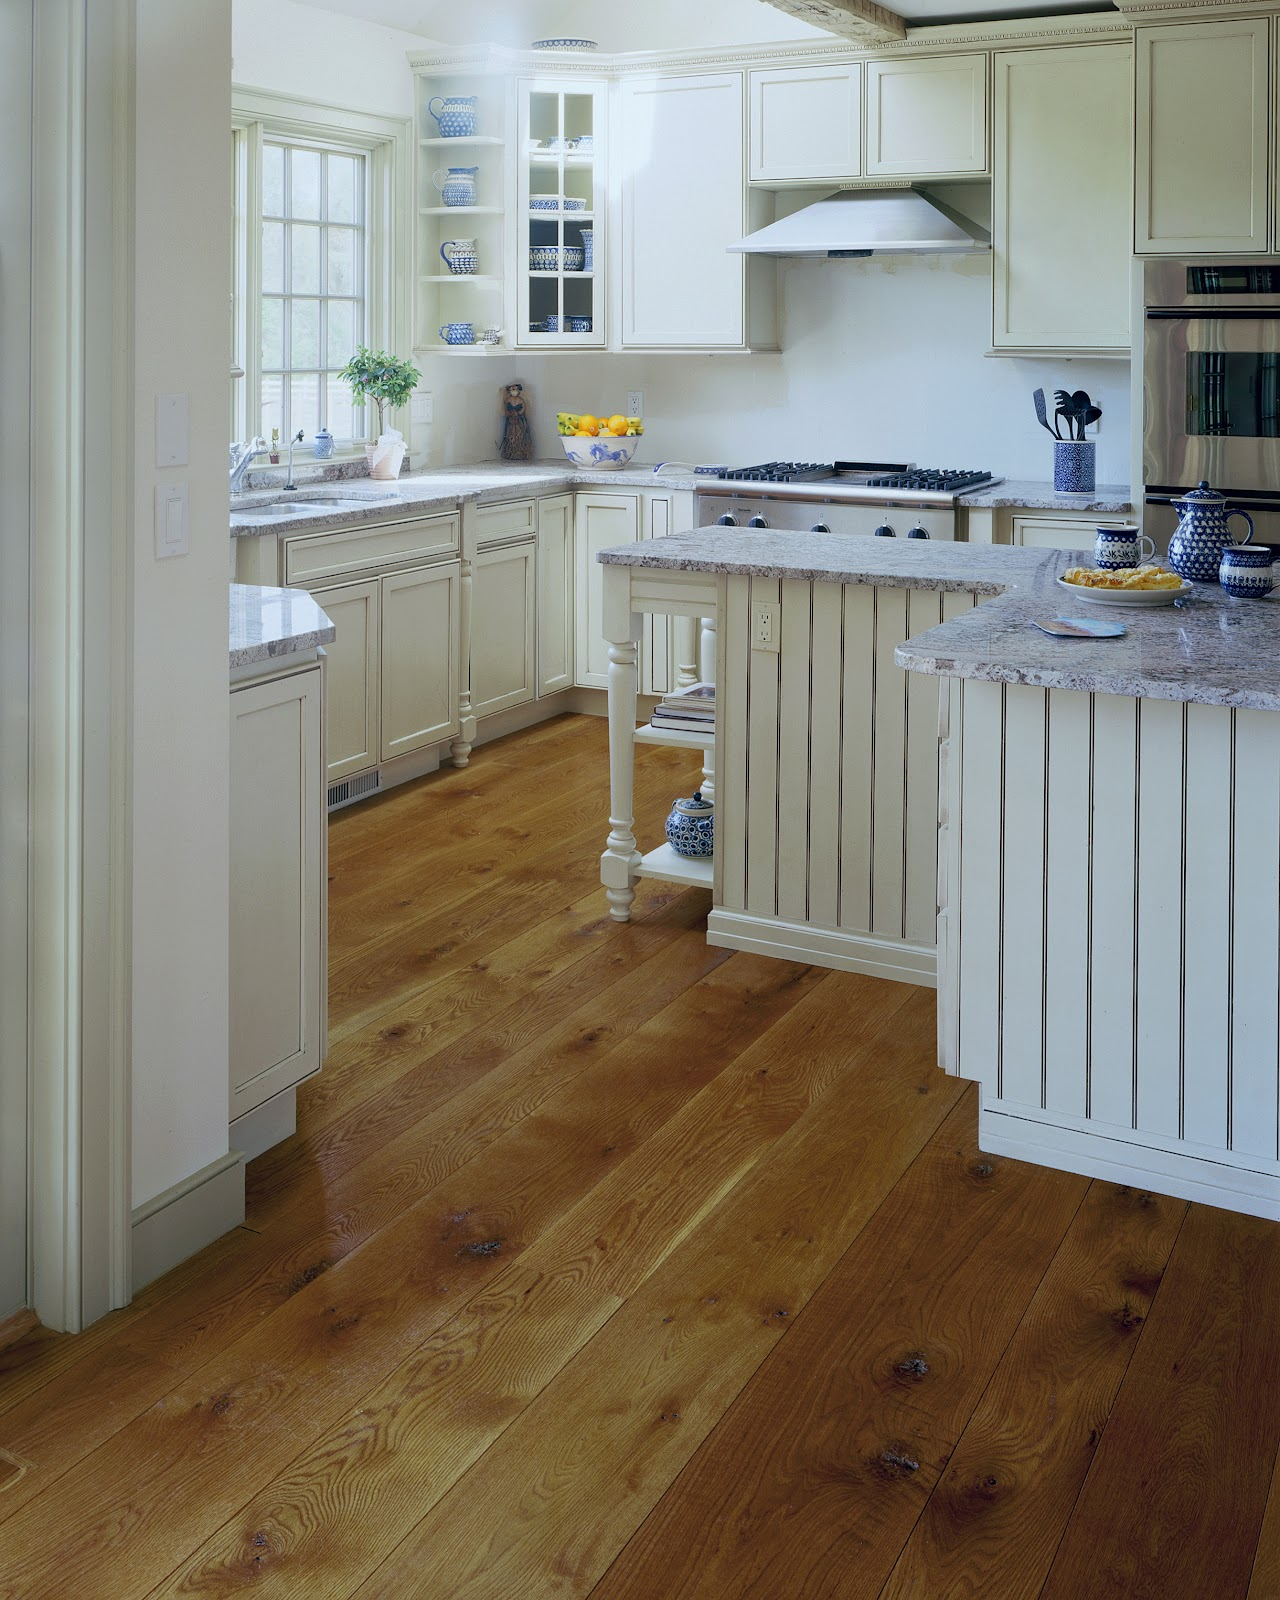 Wide plank hardwood flooring flooring ideas home for Wood floors in kitchen